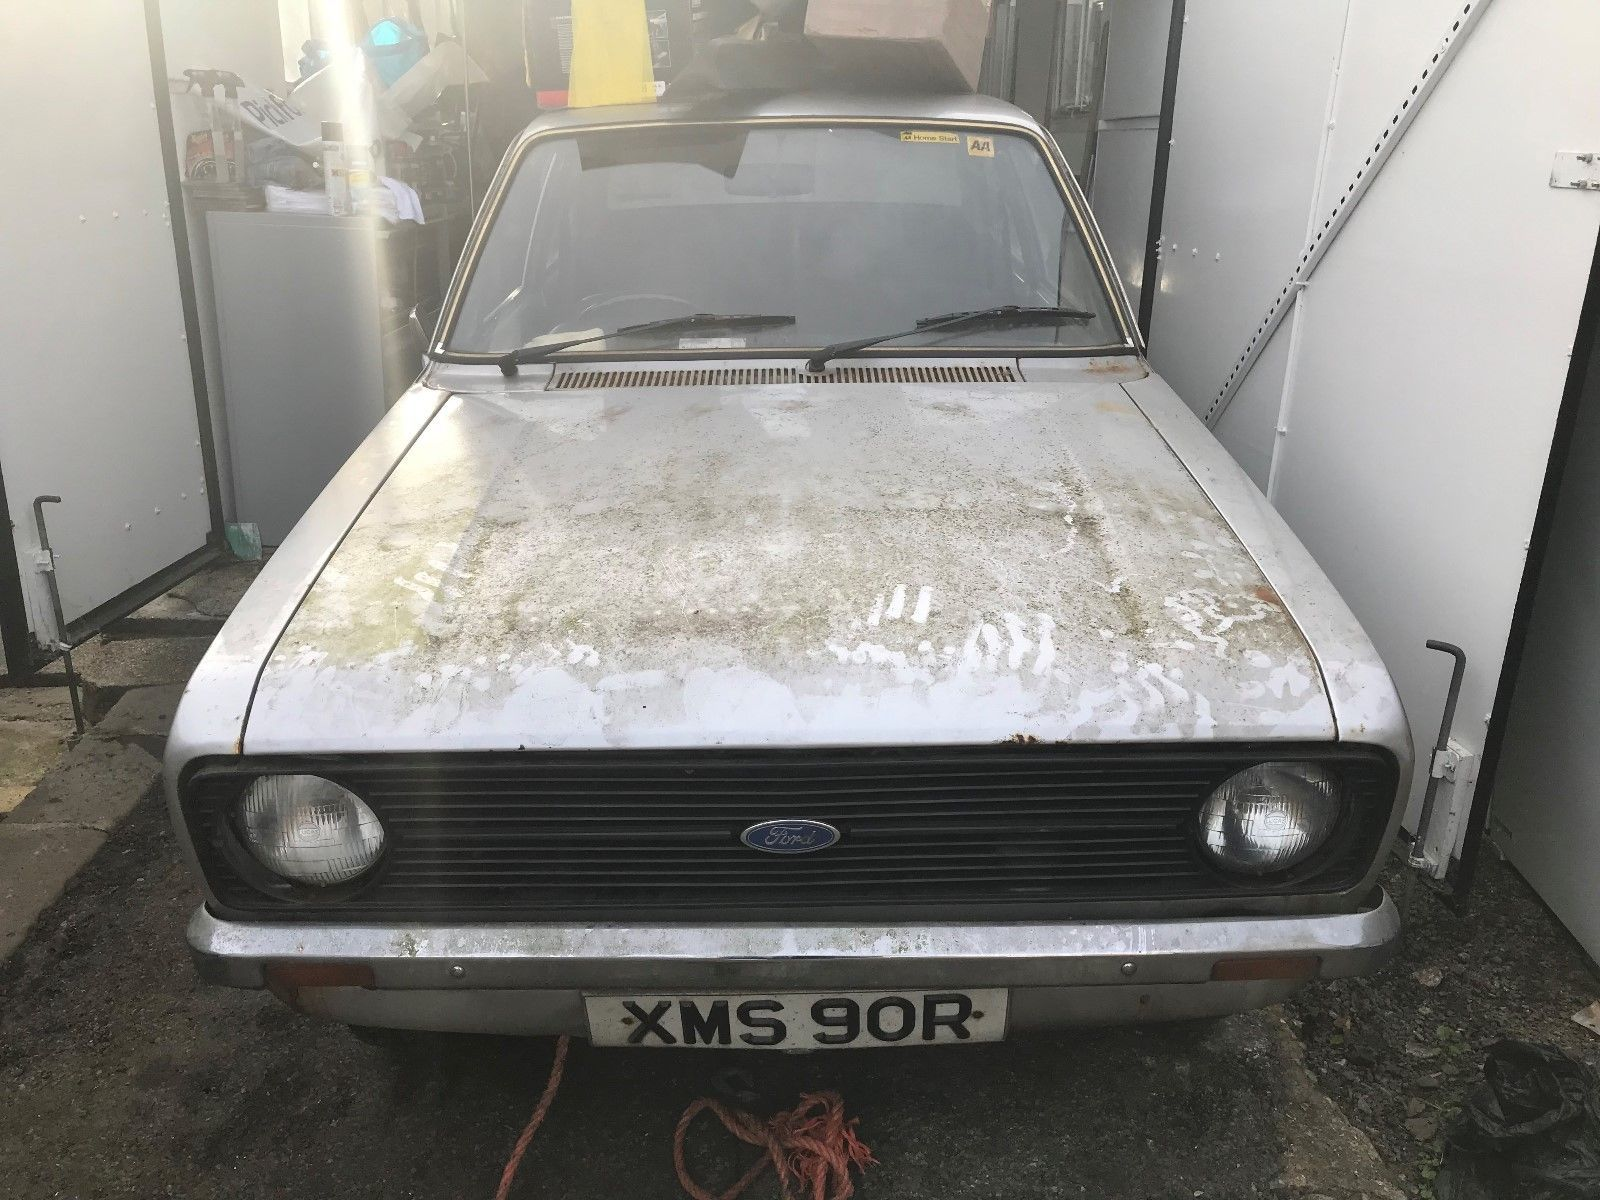 This Ford Escort Mk2 13l 49000 Miles Garage Barn Find English Car Is For Sale